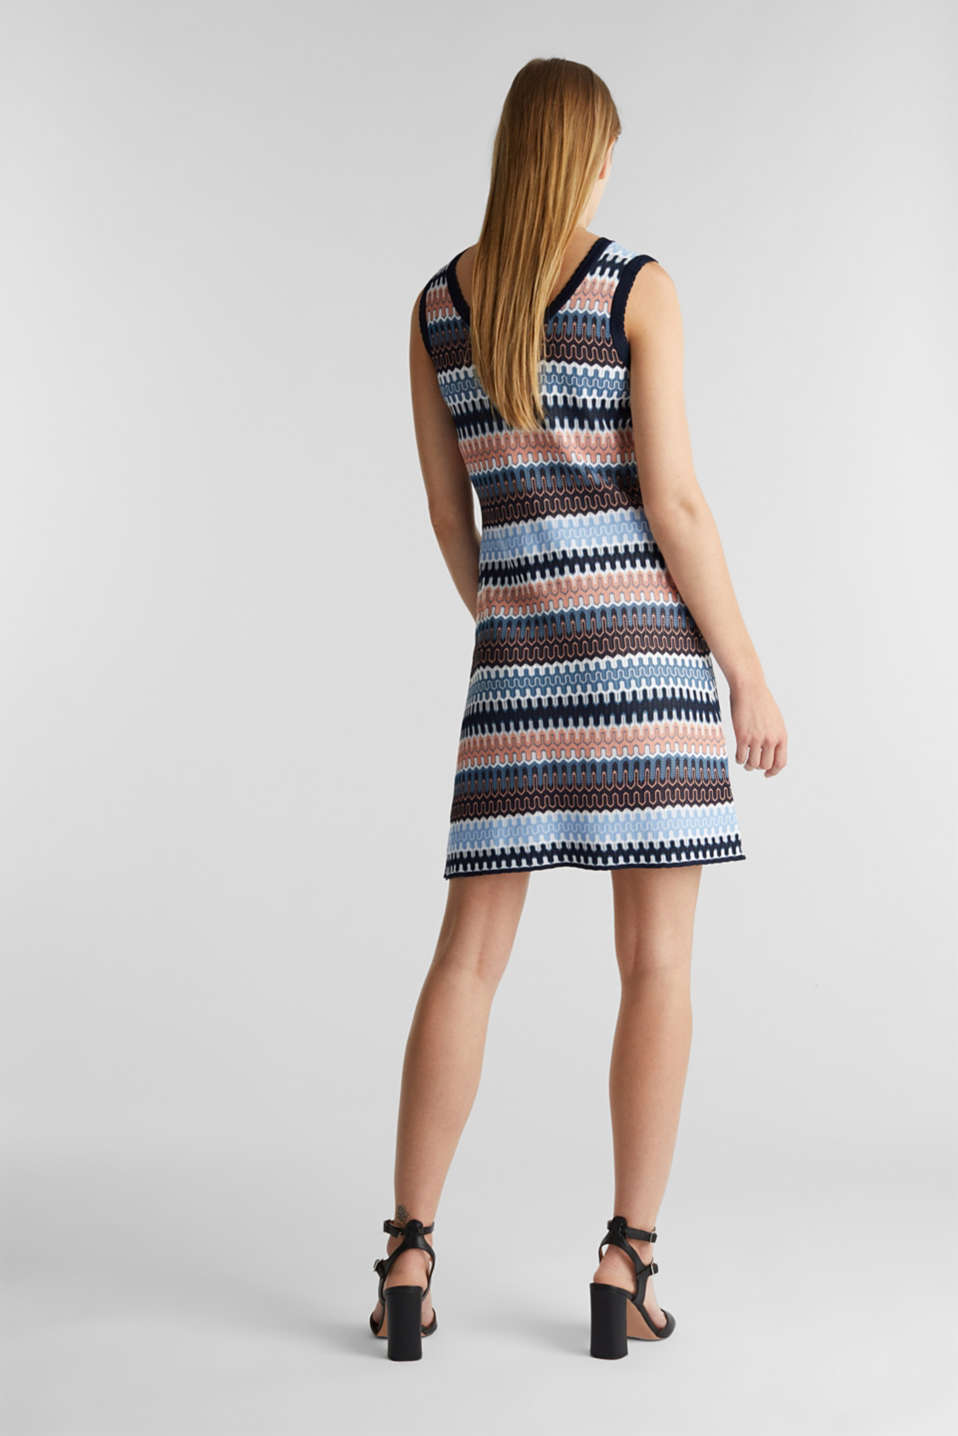 Knit dress with a jacquard pattern, NAVY, detail image number 2